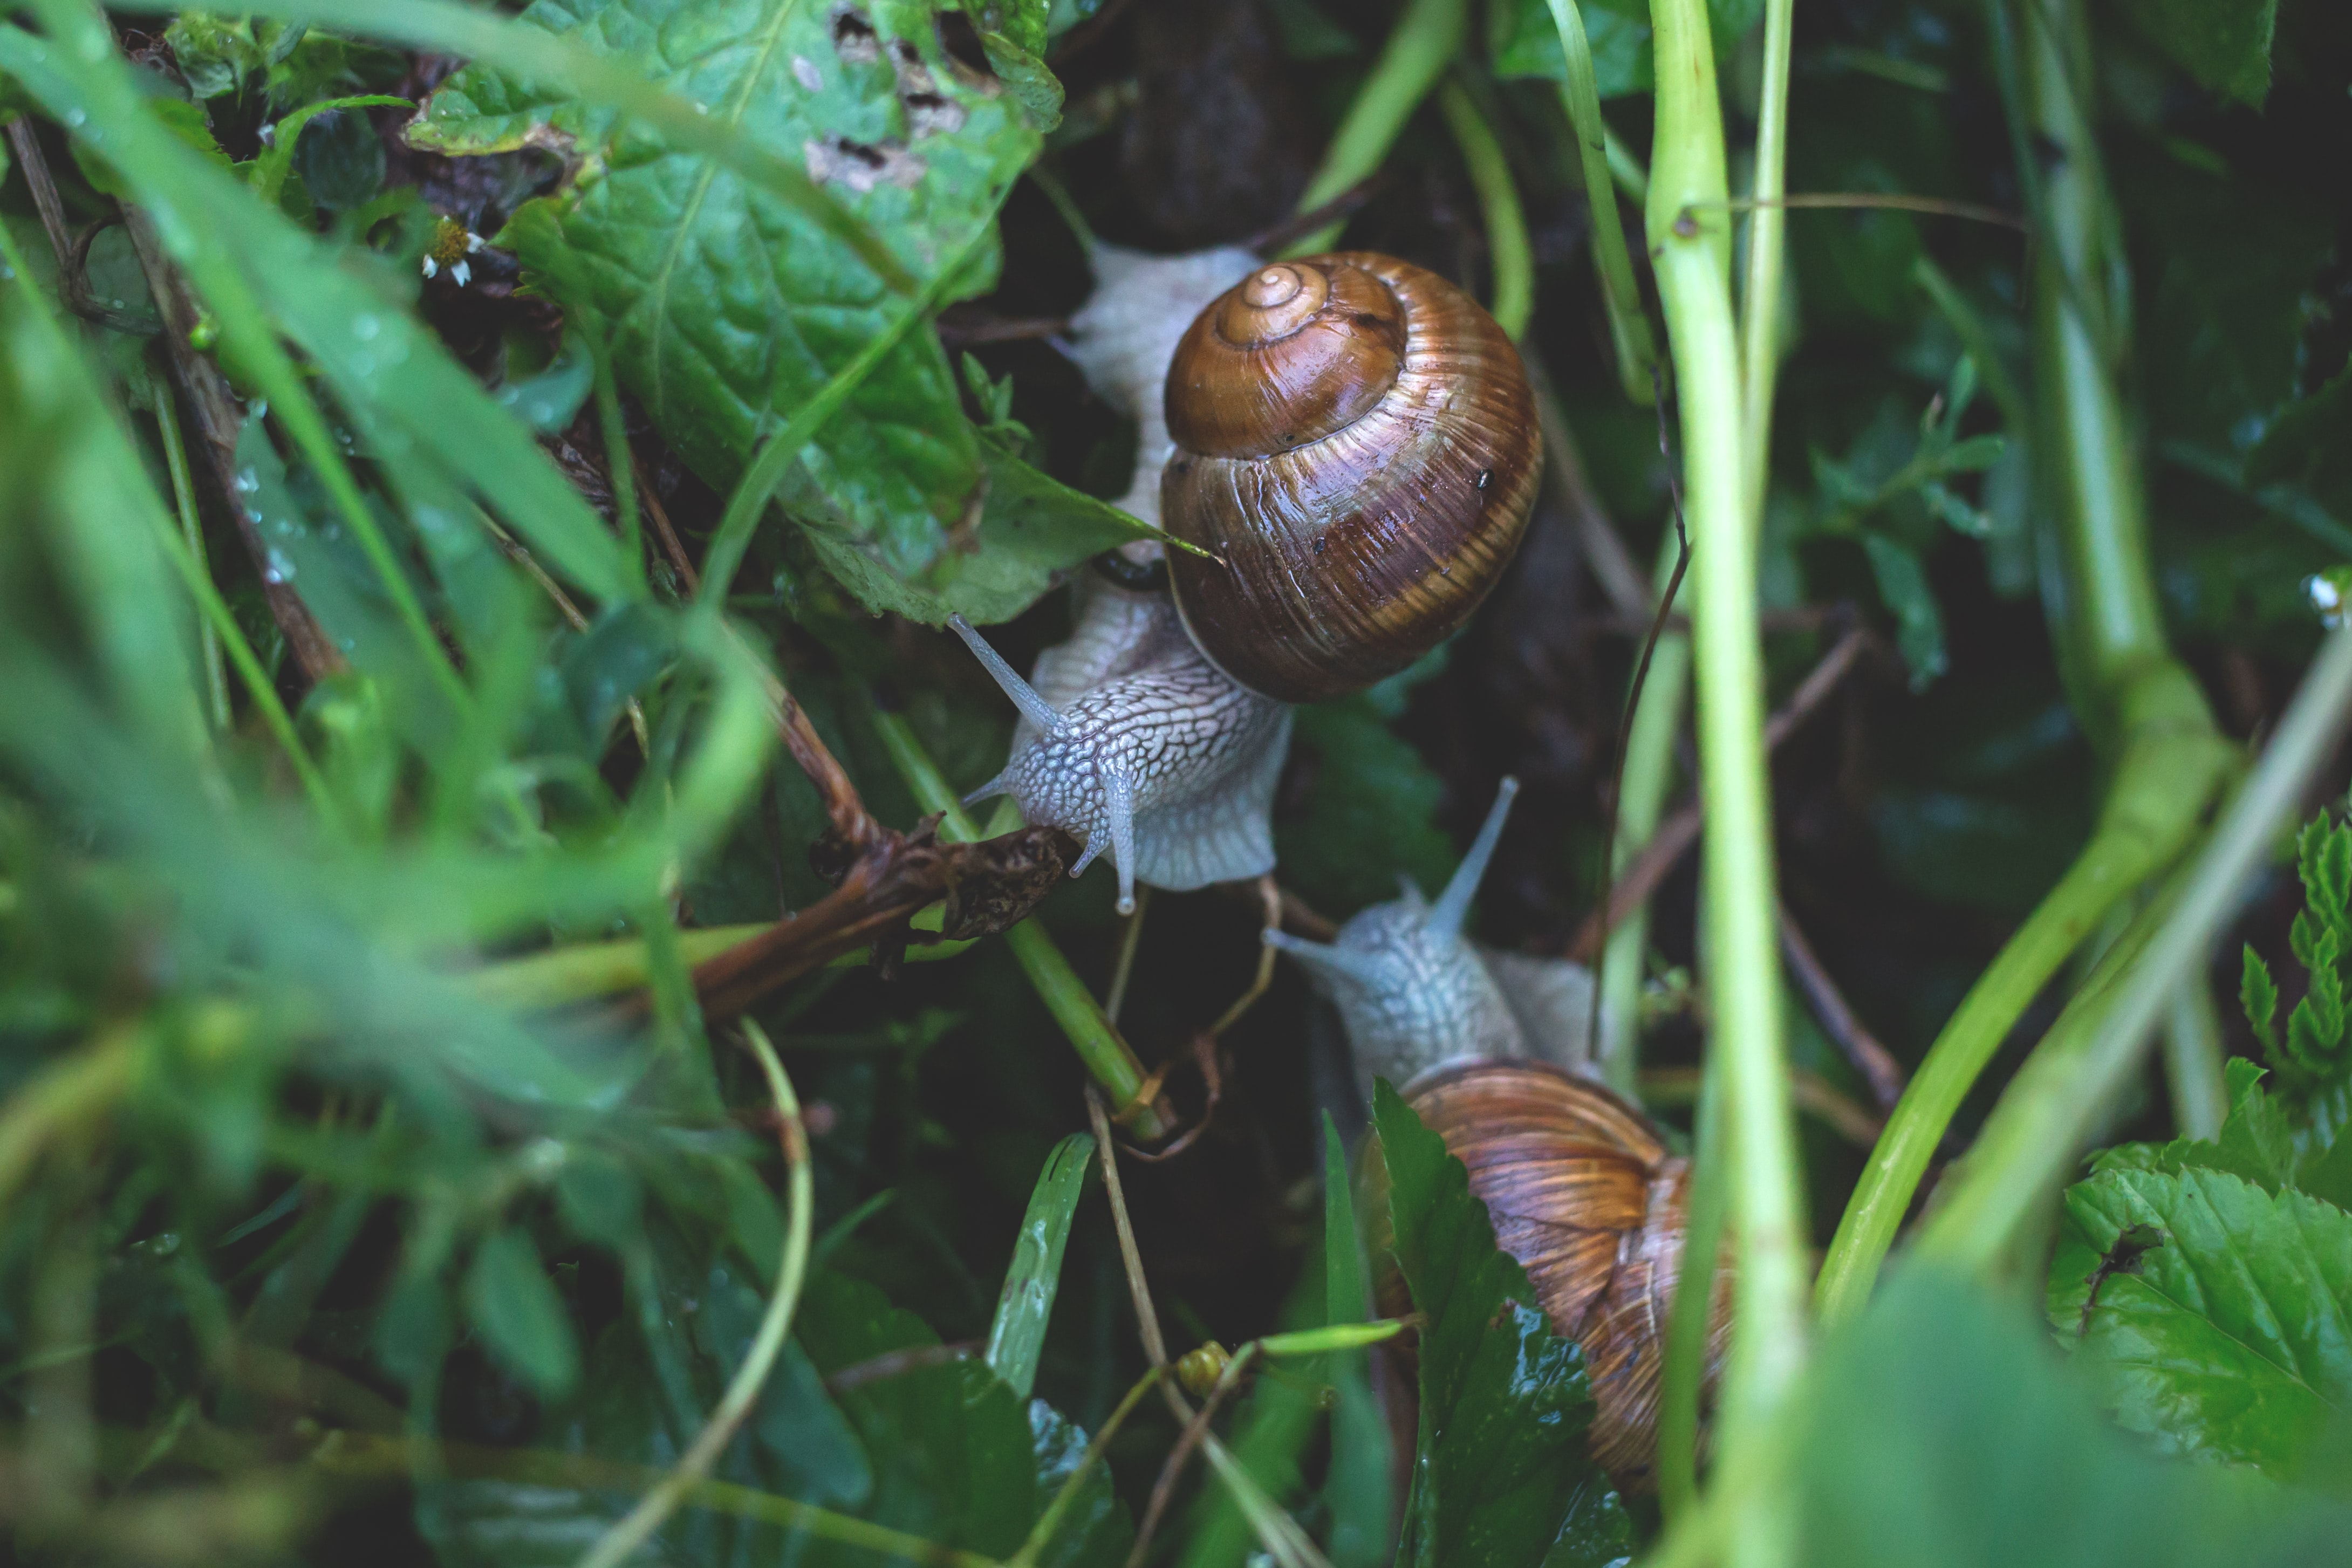 two snails surrounded by green leafed plant